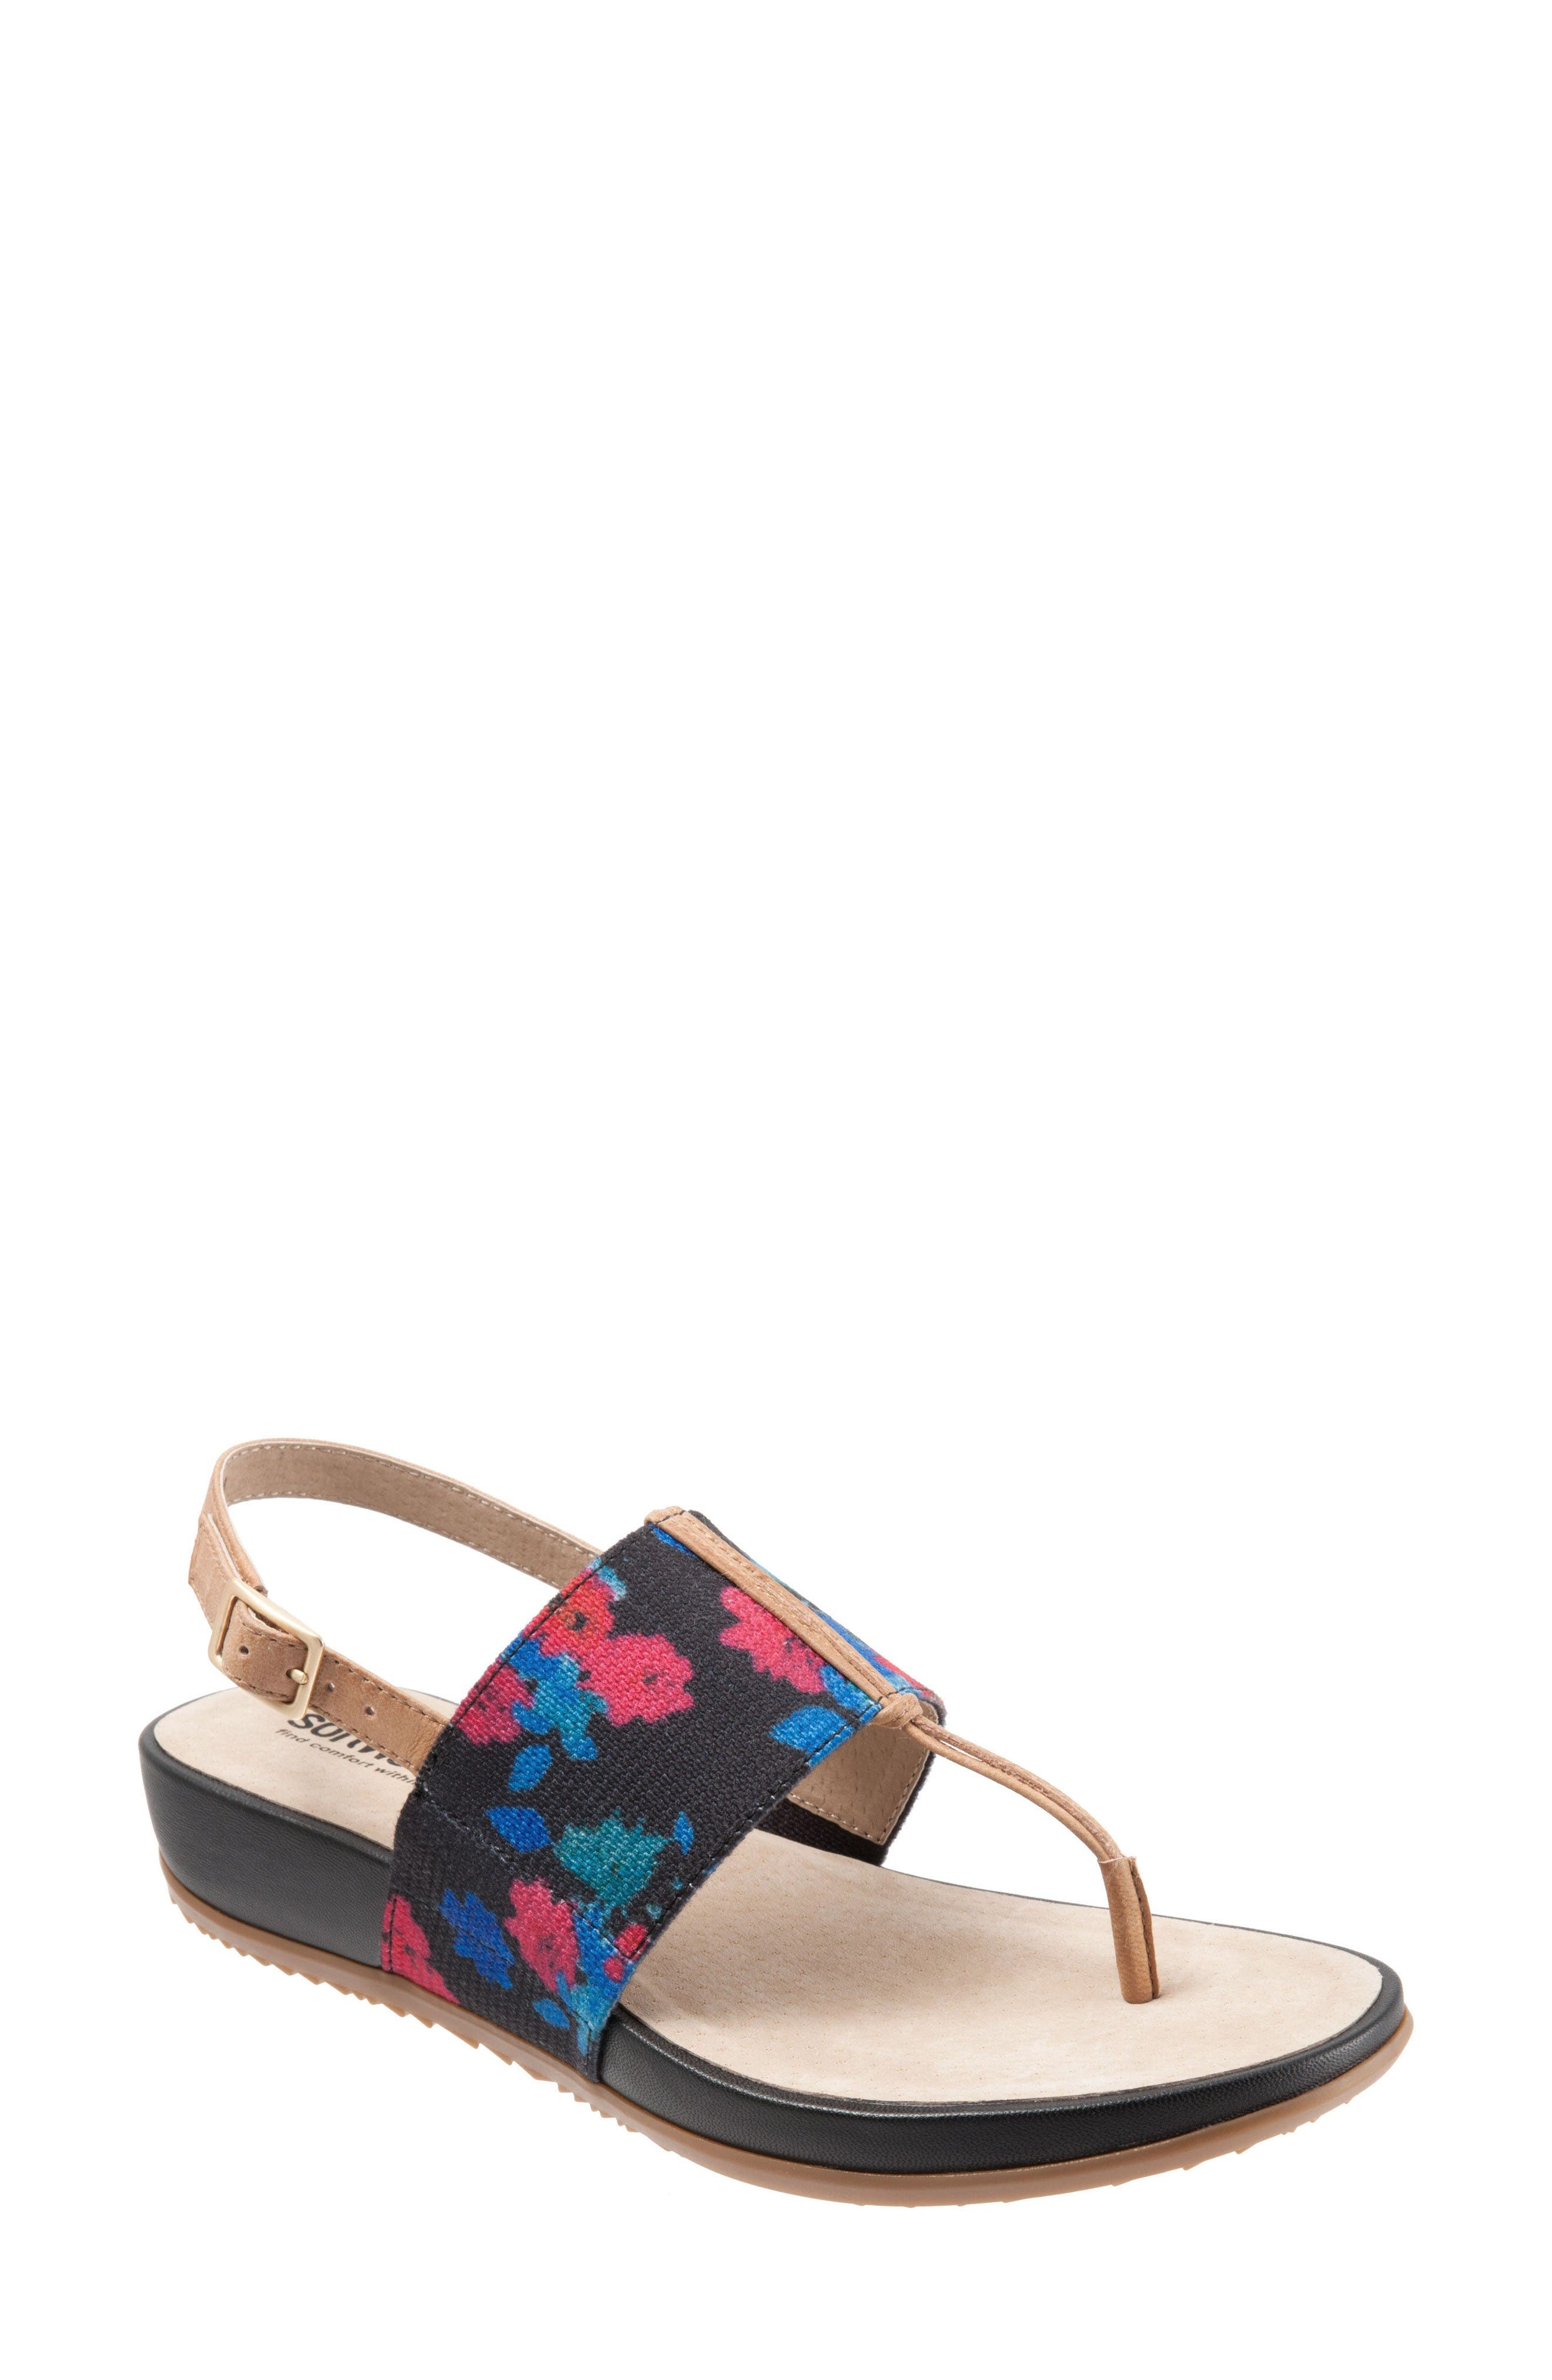 Alternate Image 1 Selected - SoftWalk® Daytona Sandal (Women)